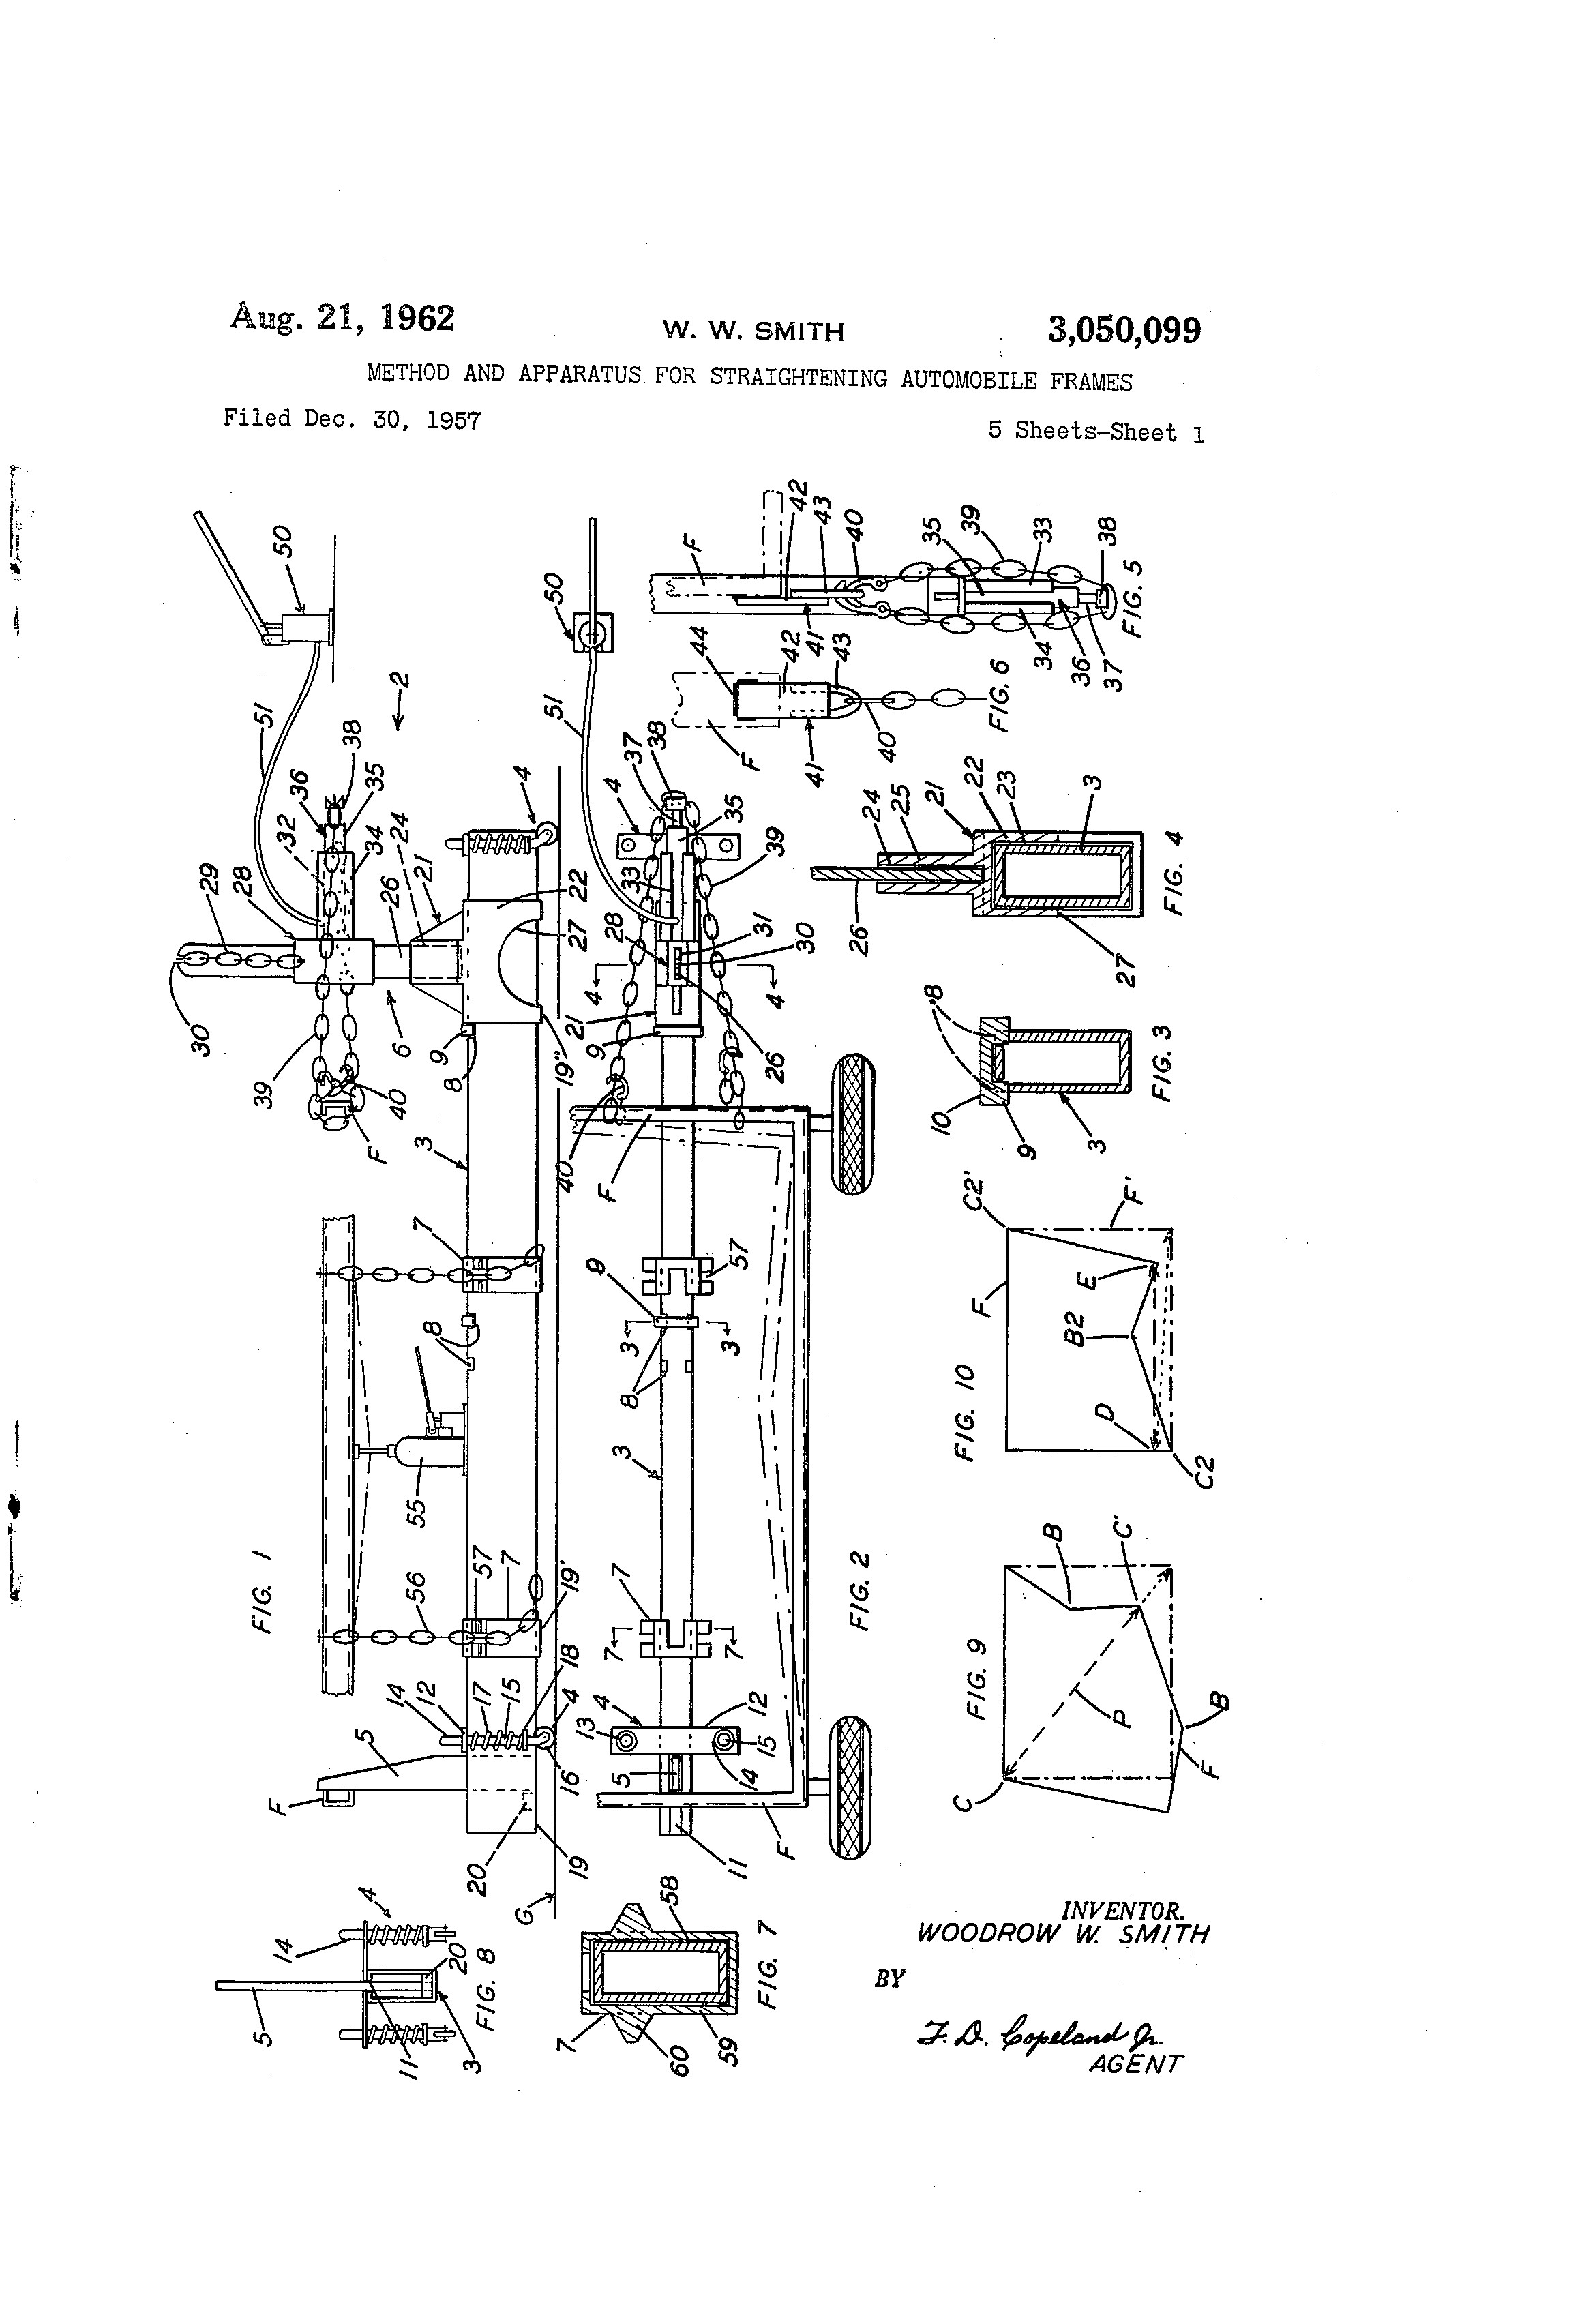 small resolution of us3050099a method and apparatus for straightening automobile frames google patents